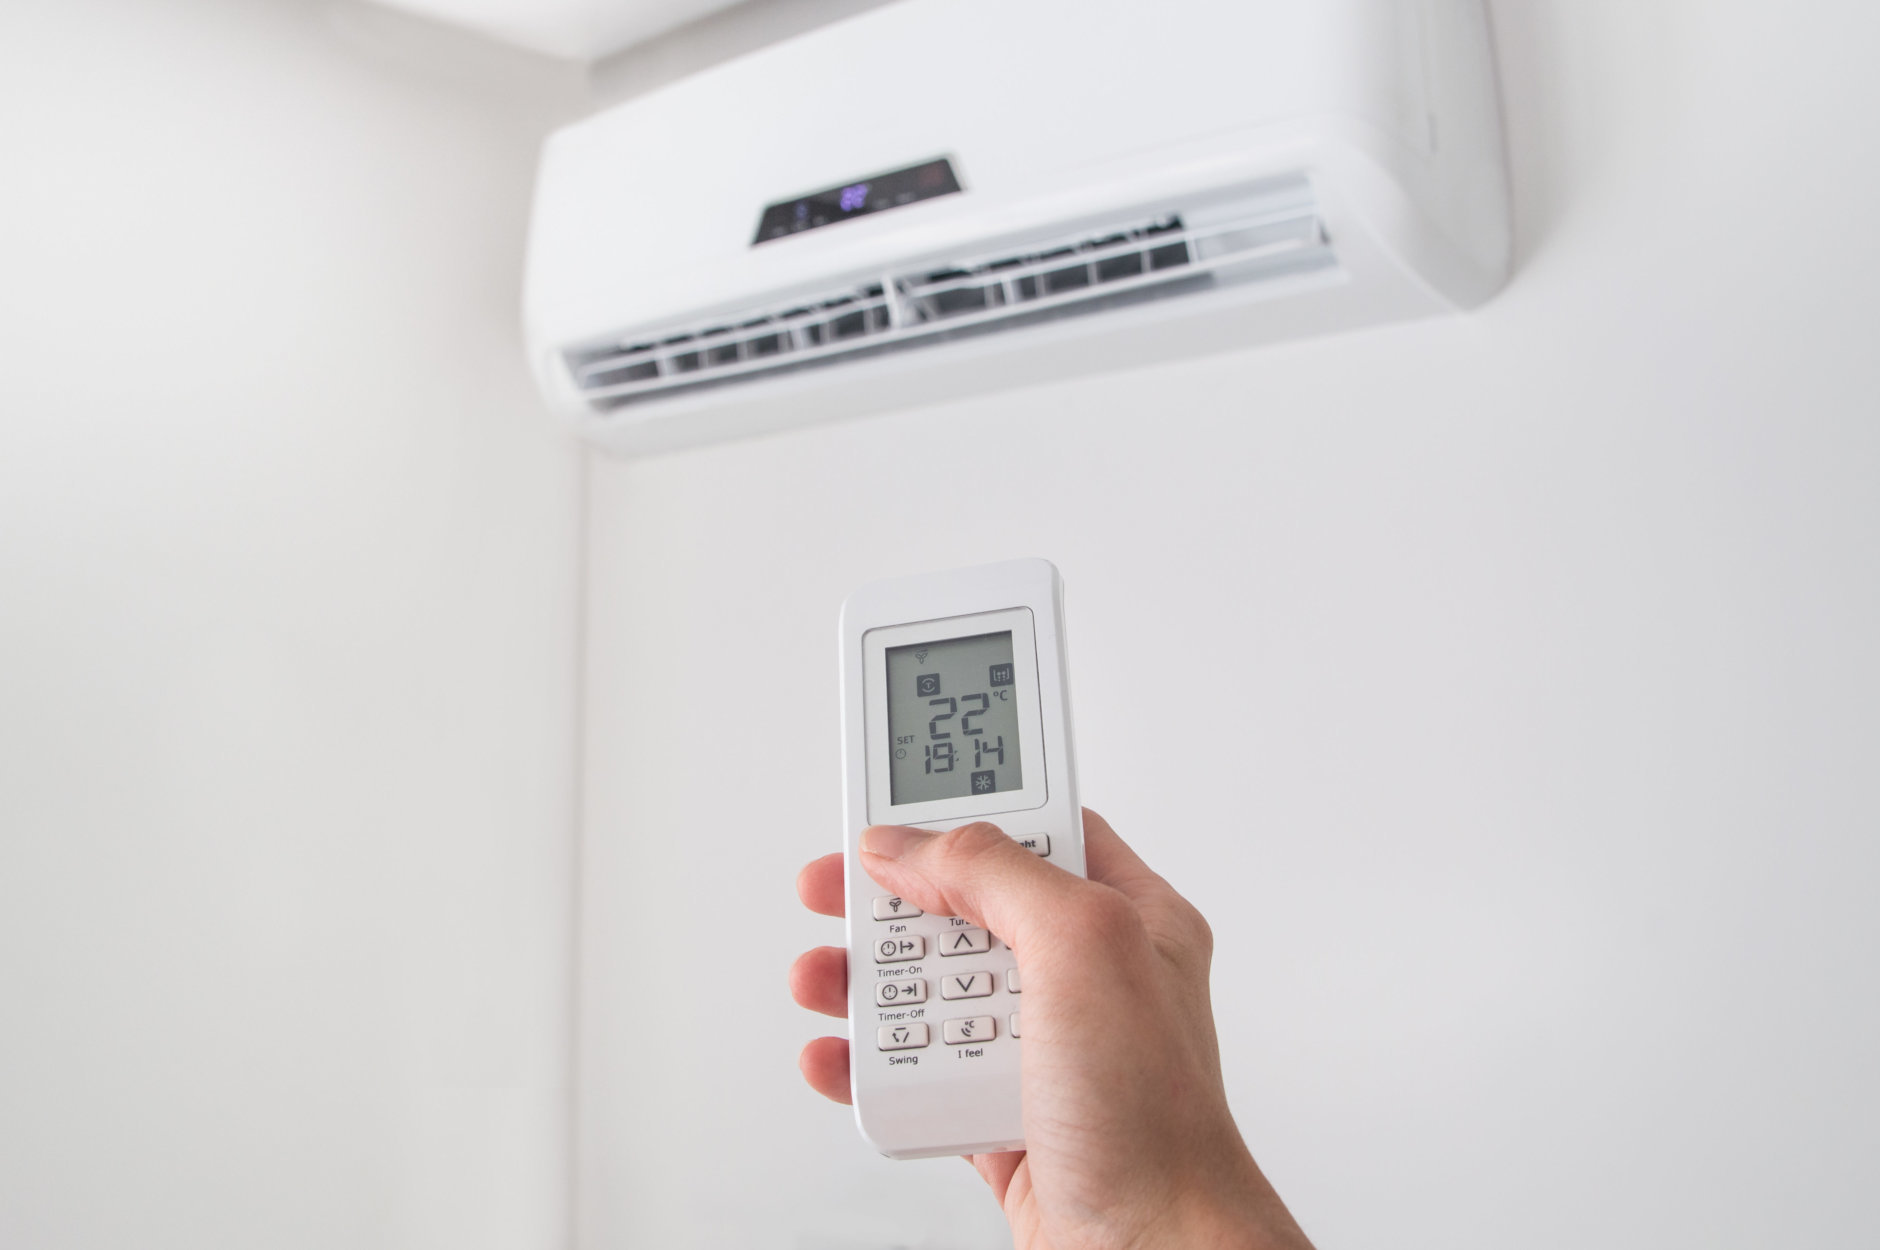 Pepco and Baltimore Gas and Electric are giving customers a chance to save on their electric bill by reducing their energy use Tuesday. (Getty Images)